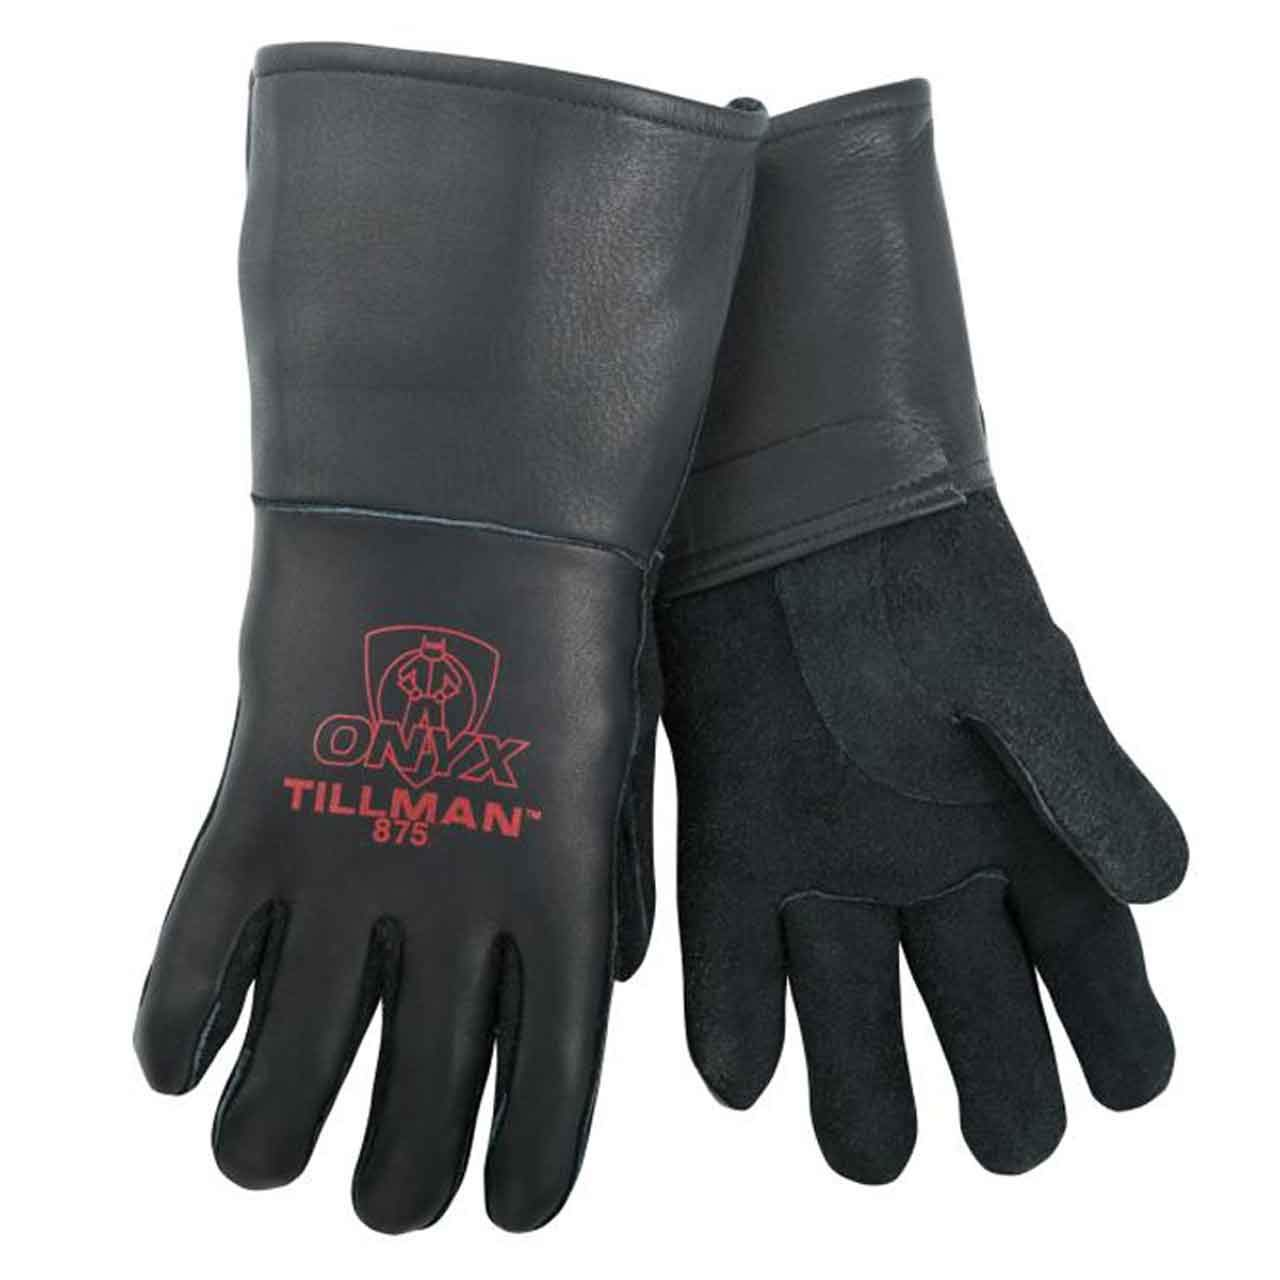 10 Best Welding Gloves for 2020 7